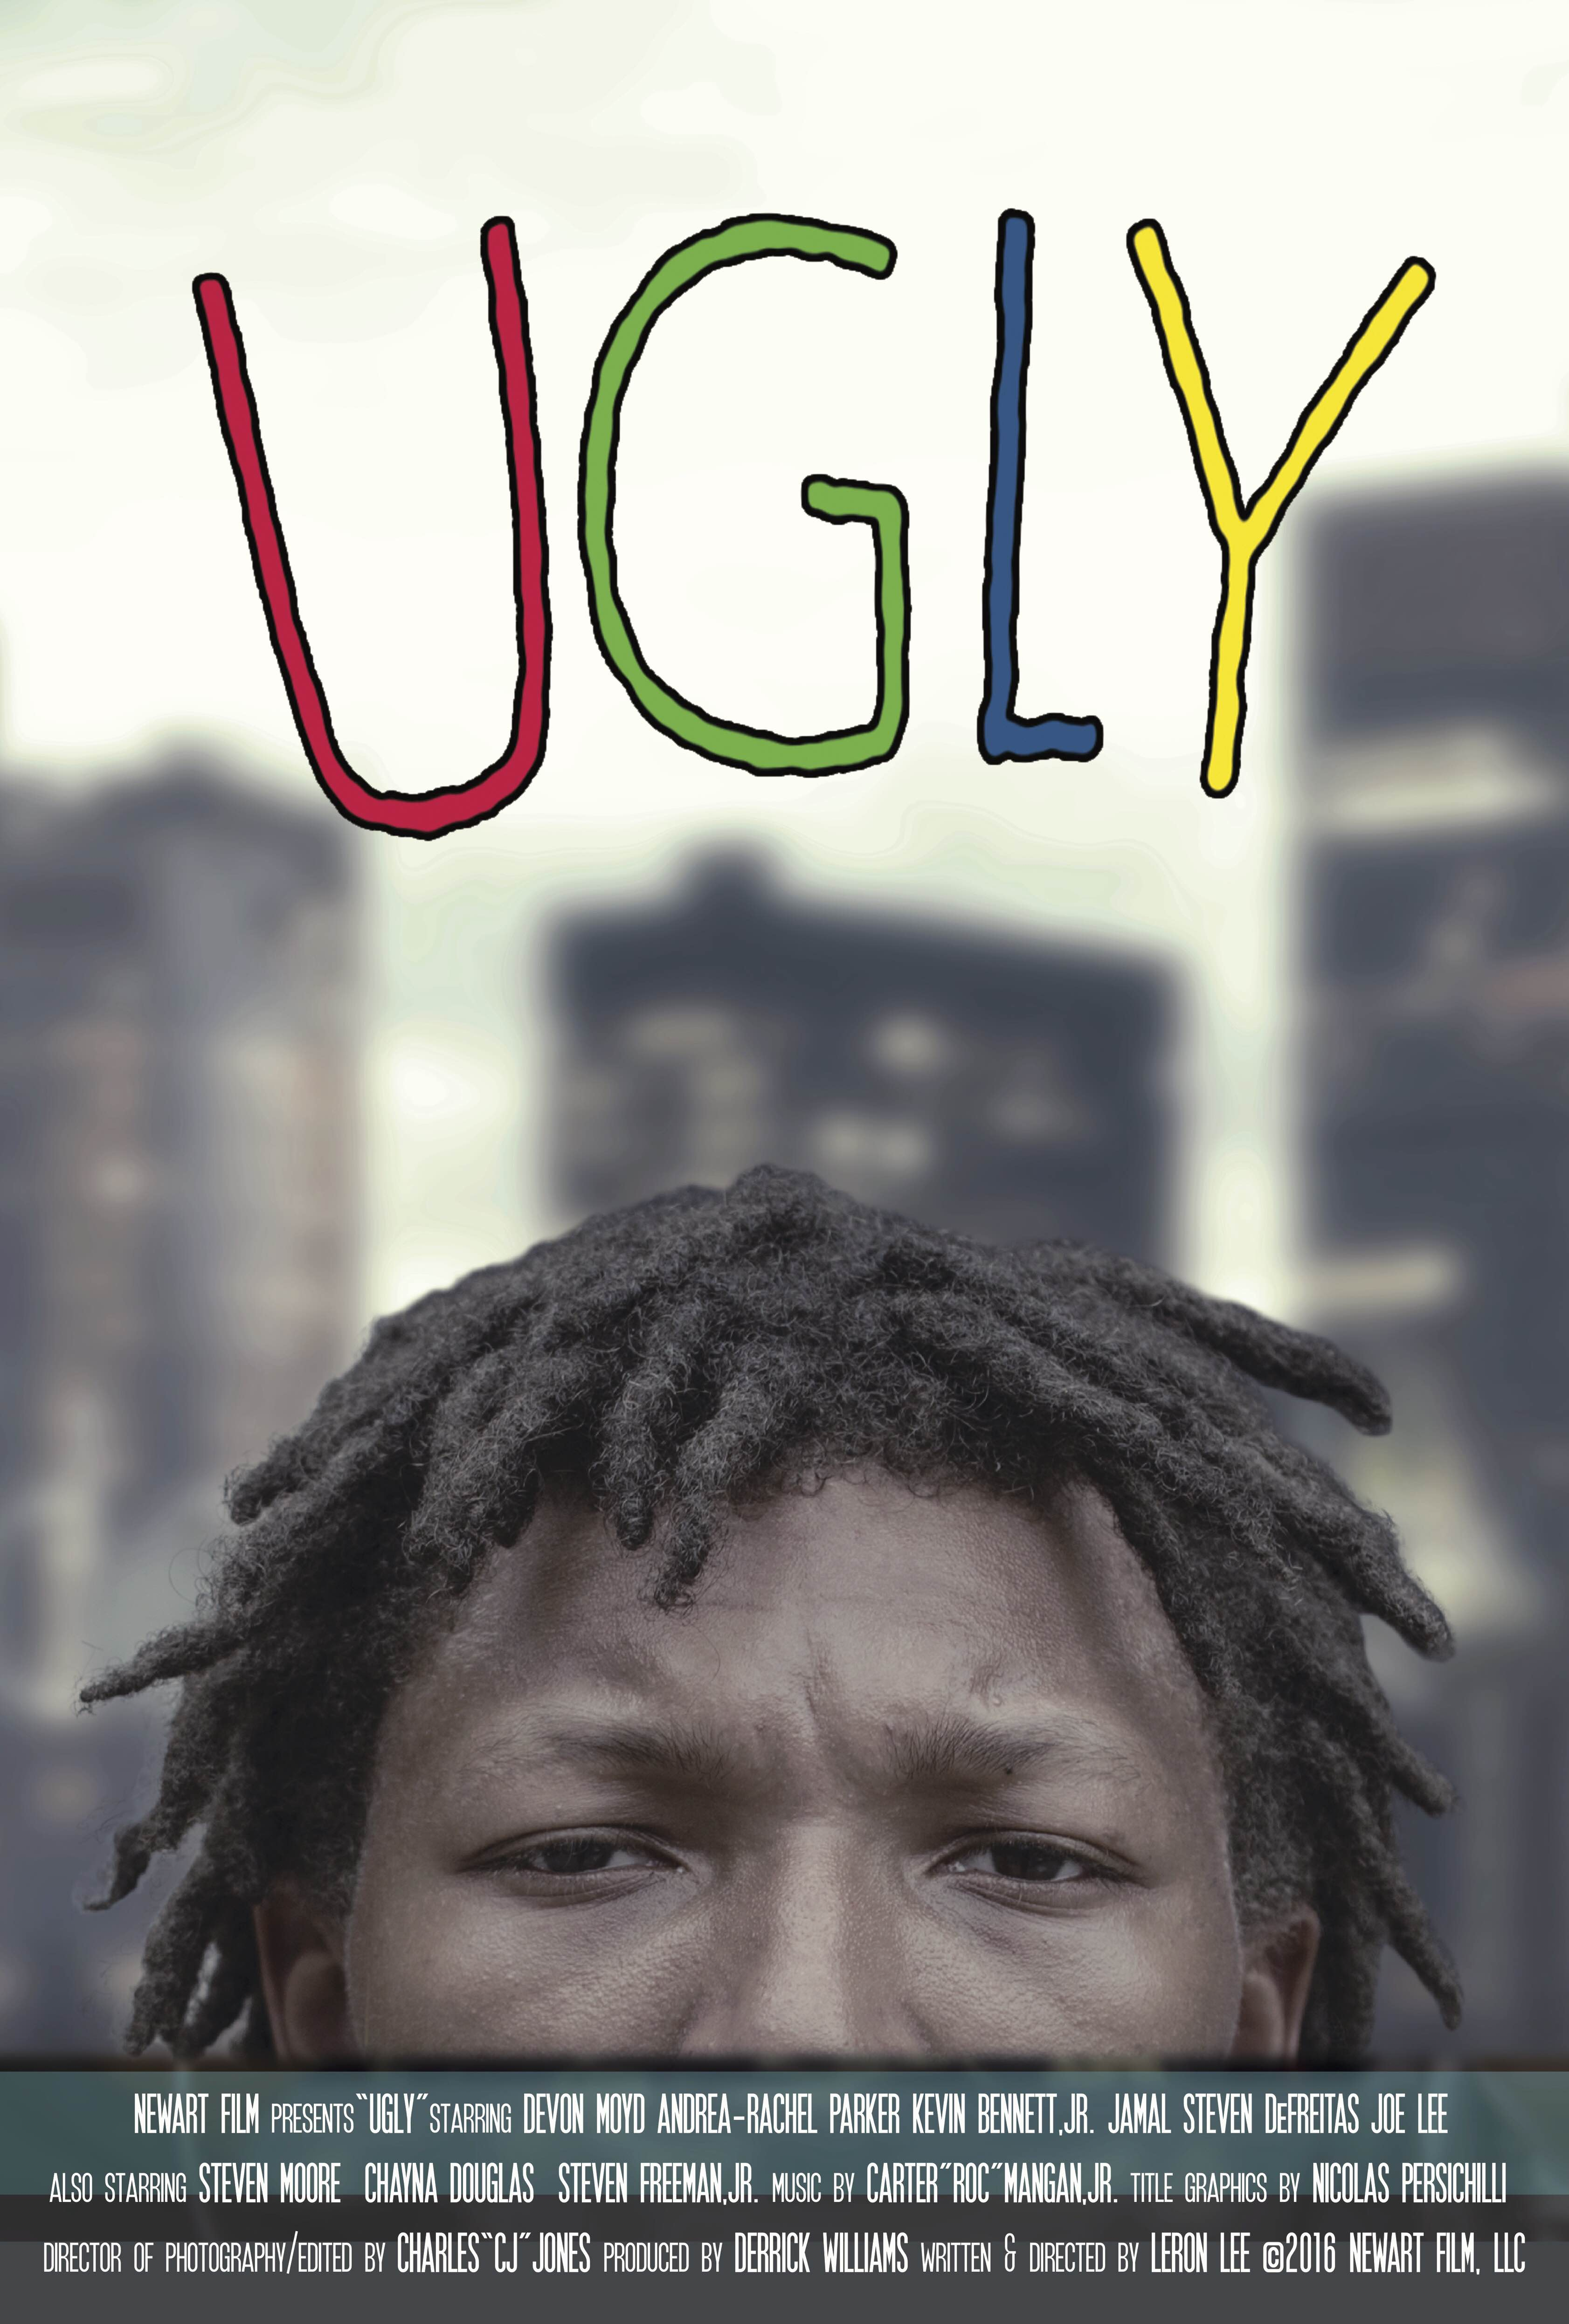 Short and ugly